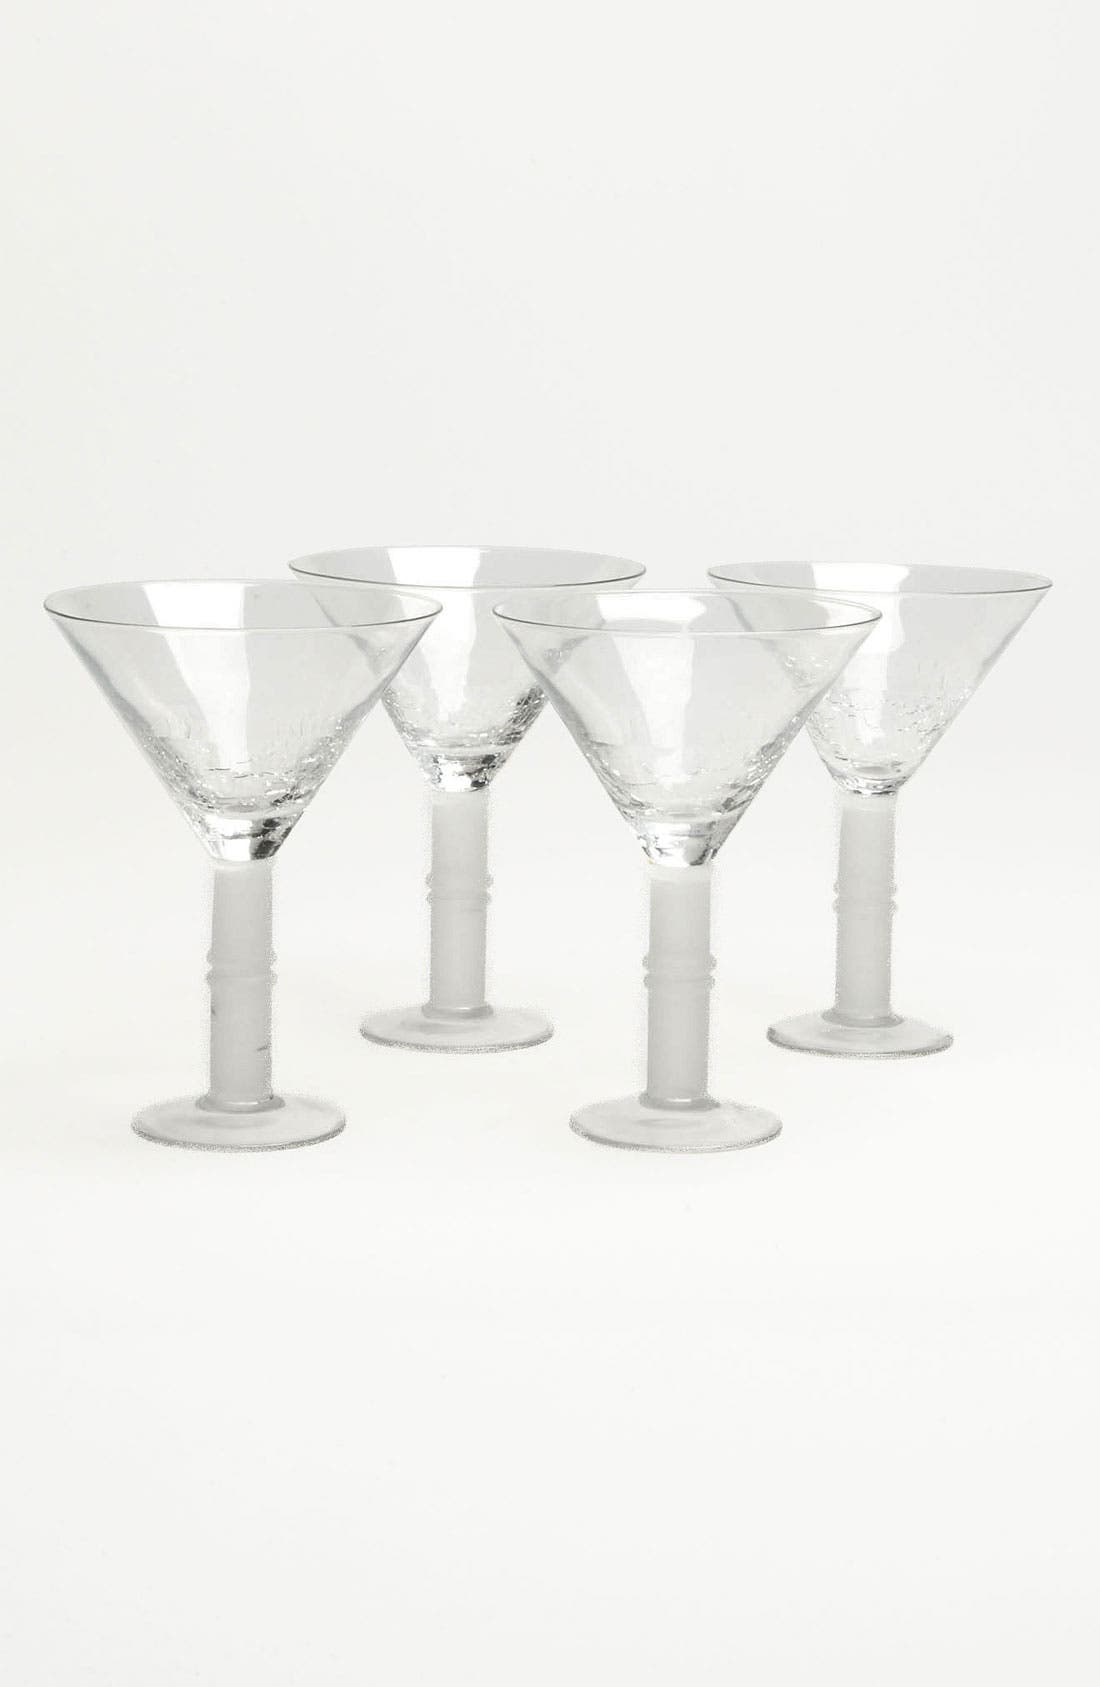 Alternate Image 1 Selected - 'Crackle' Martini Glasses (Set of 4)